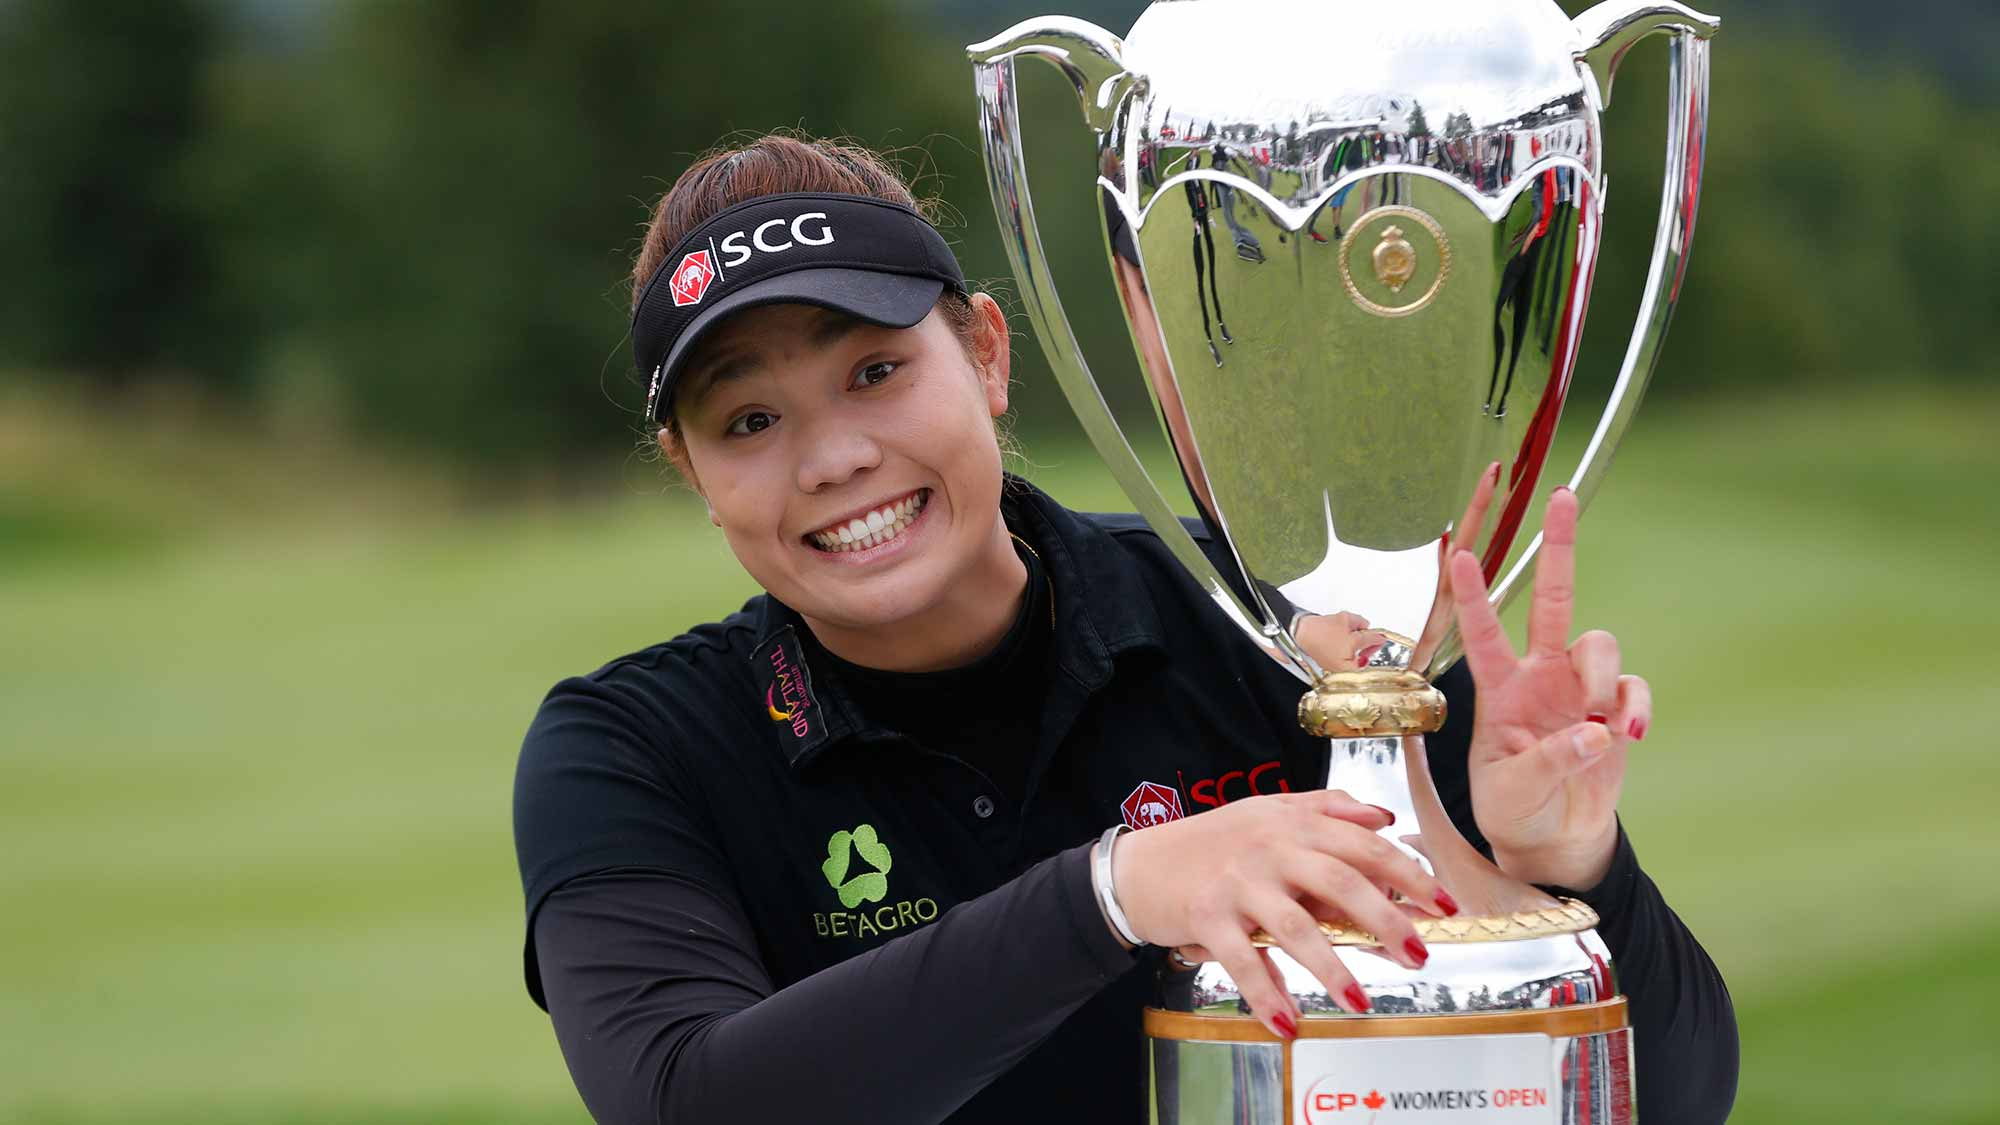 Ariya Jutanugarn of Thailand poses with the Canadian Pacific Women's Open trophy after she won the event at Priddis Greens Golf and Country Club